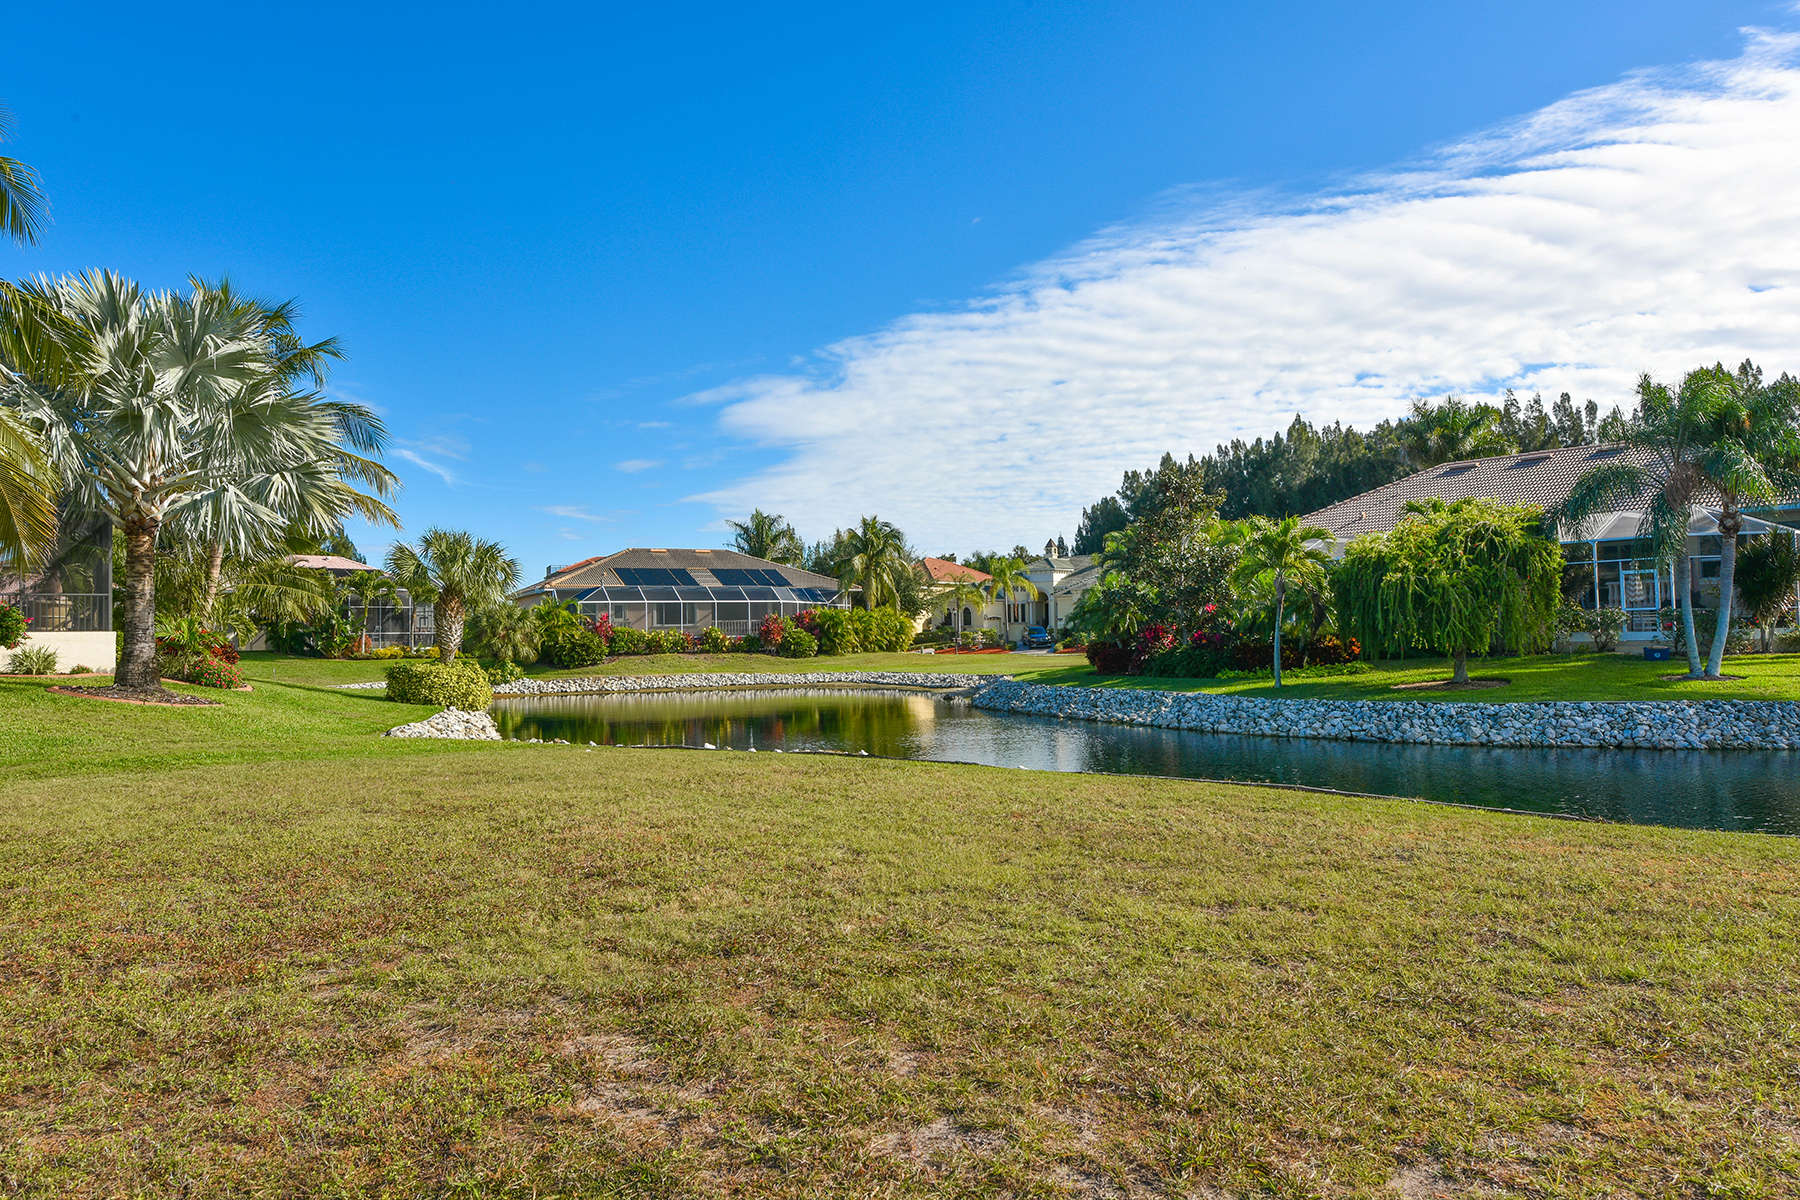 Land for Sale at HARBOUR LANDINGS ESTATES 4011 Commodore Blvd 57 Cortez, Florida, 34215 United States